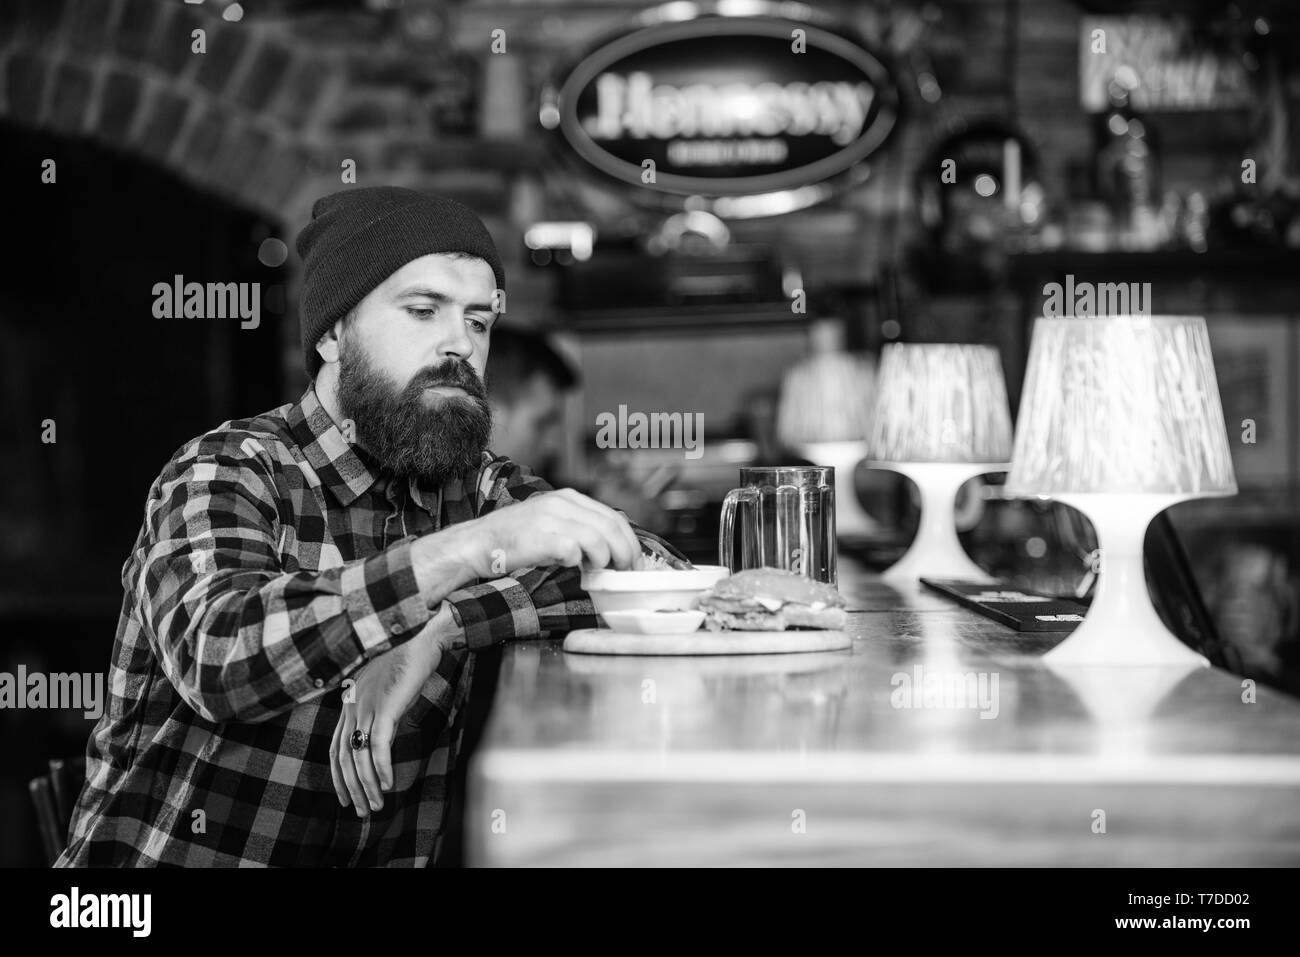 Hipster hungry man eat burger. Man with beard eat burger menu. Brutal hipster bearded man sit at bar counter. Cheat meal. High calorie food. Delicious burger concept. Enjoy taste of fresh burger. - Stock Image